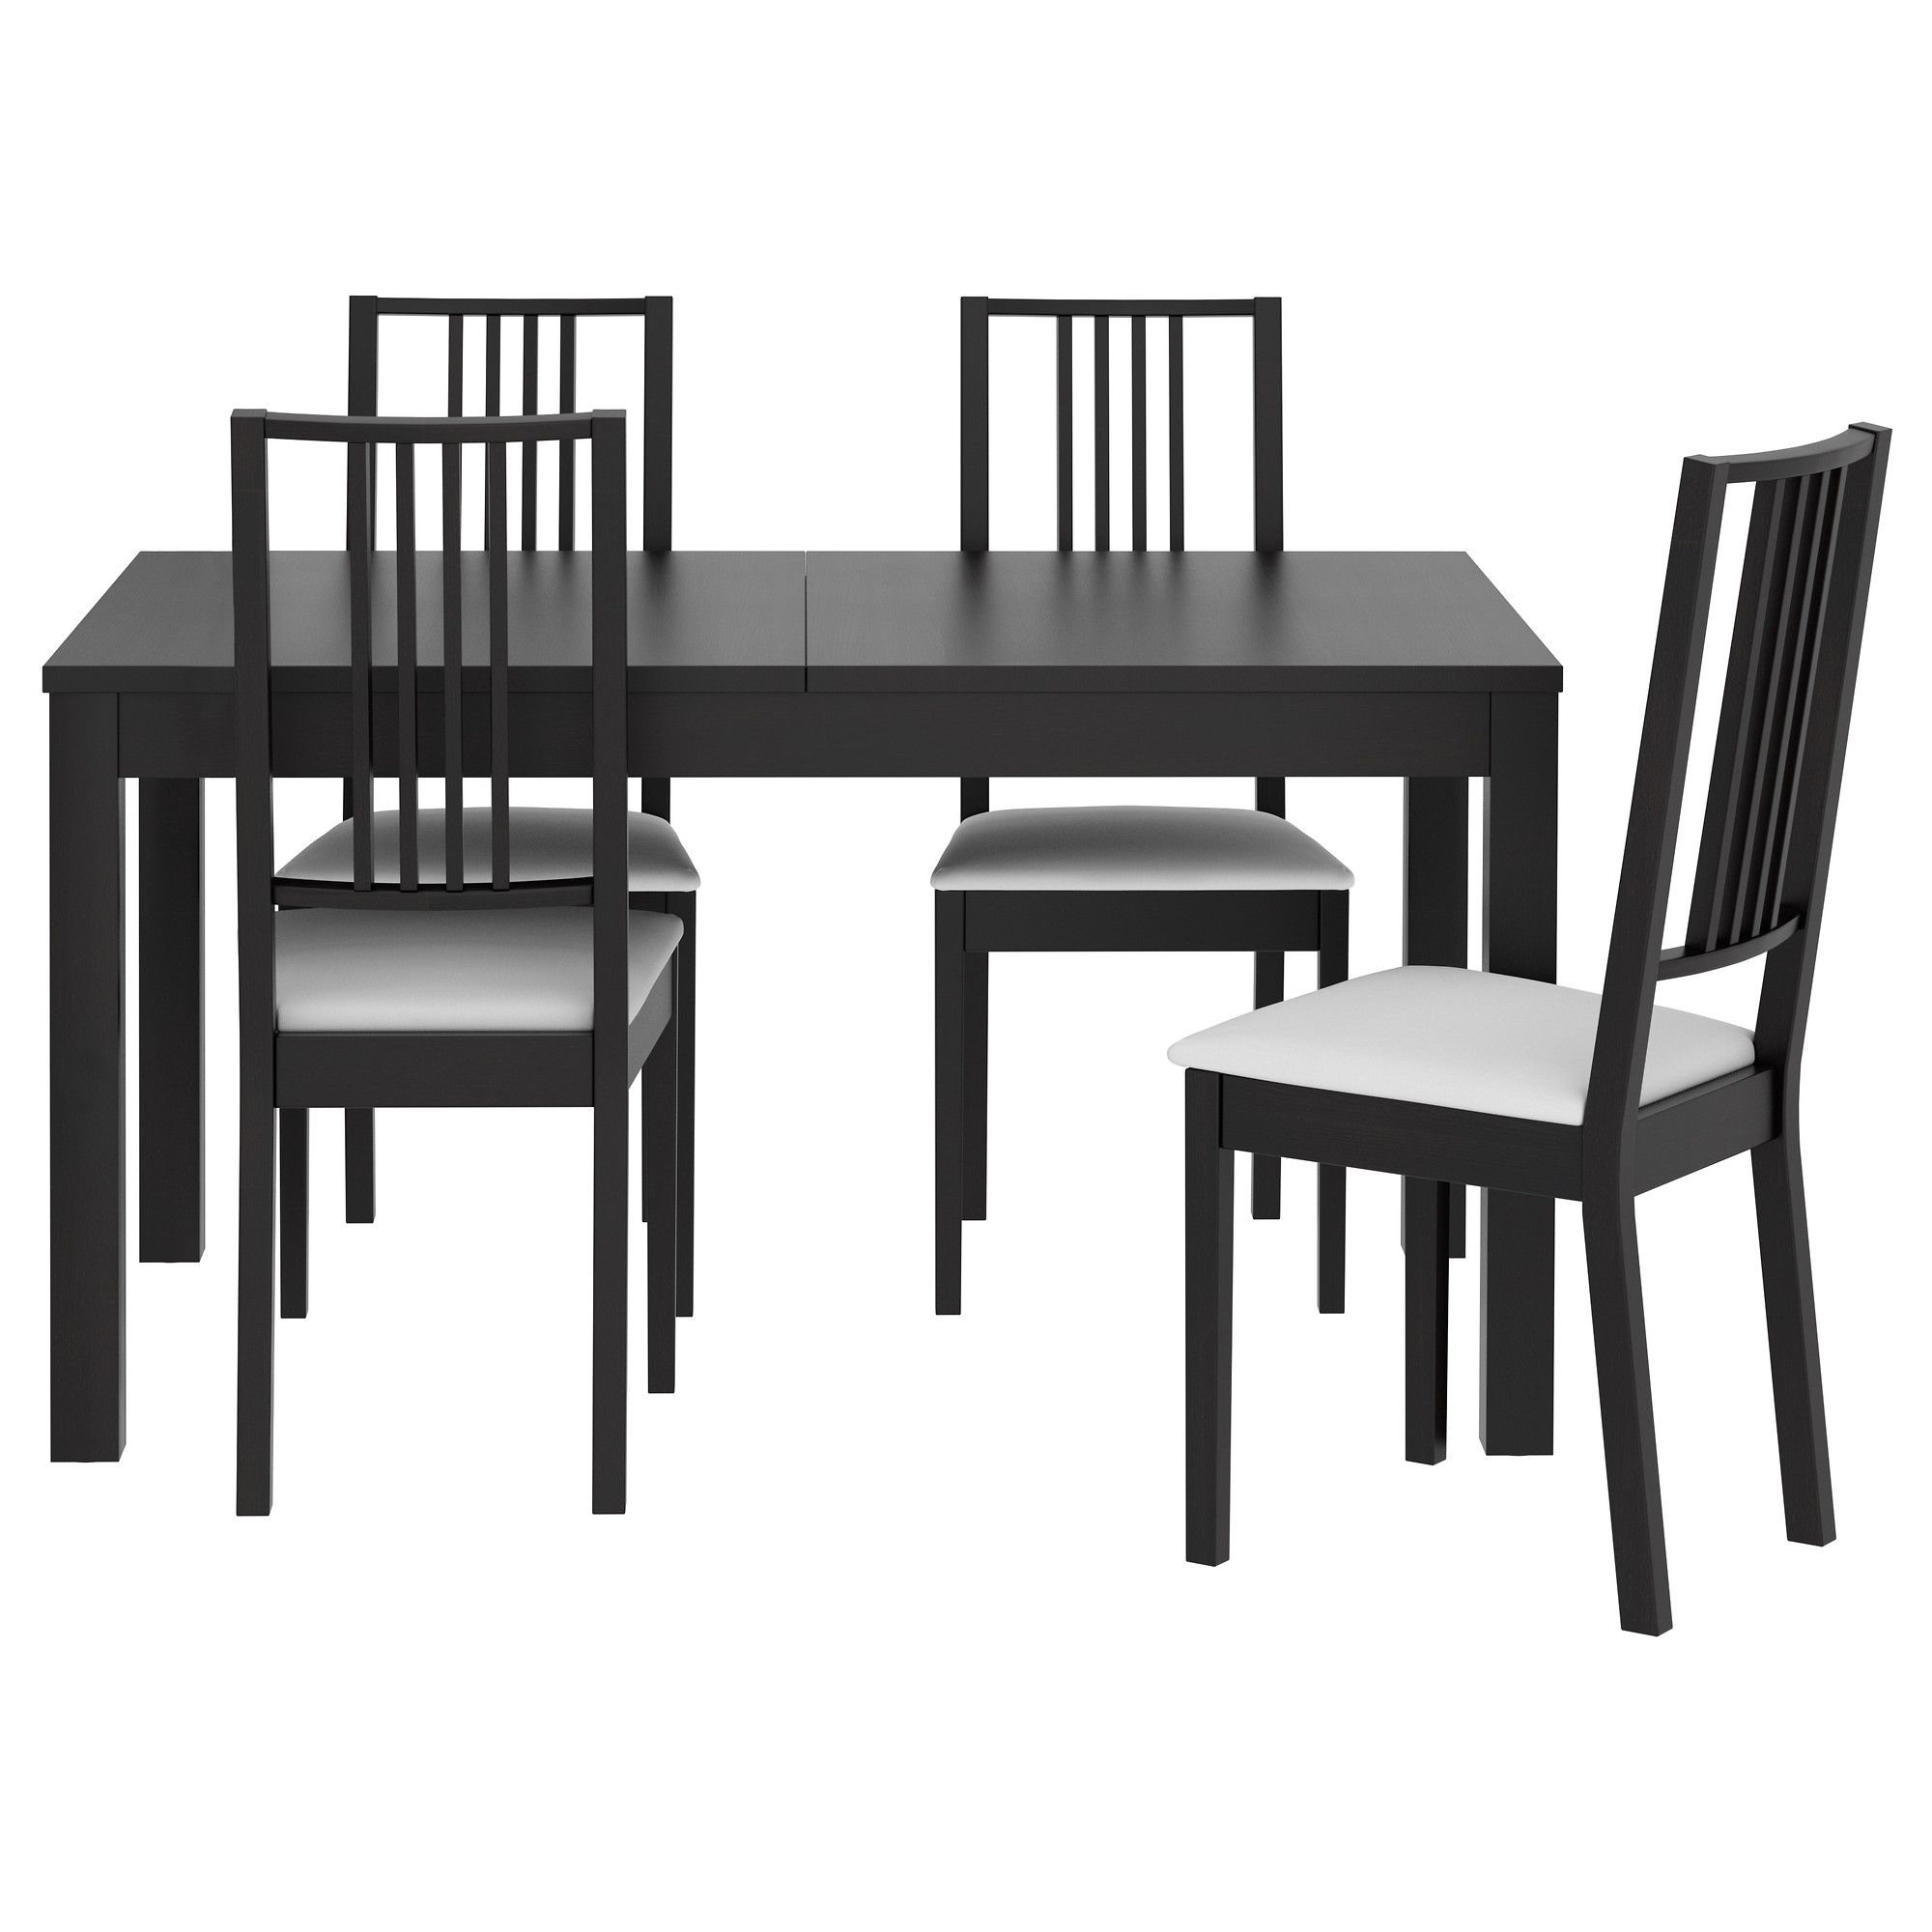 Ikea Dining Table Set Regarding Widely Used Atwood Transitional Square Dining Tables (View 19 of 30)